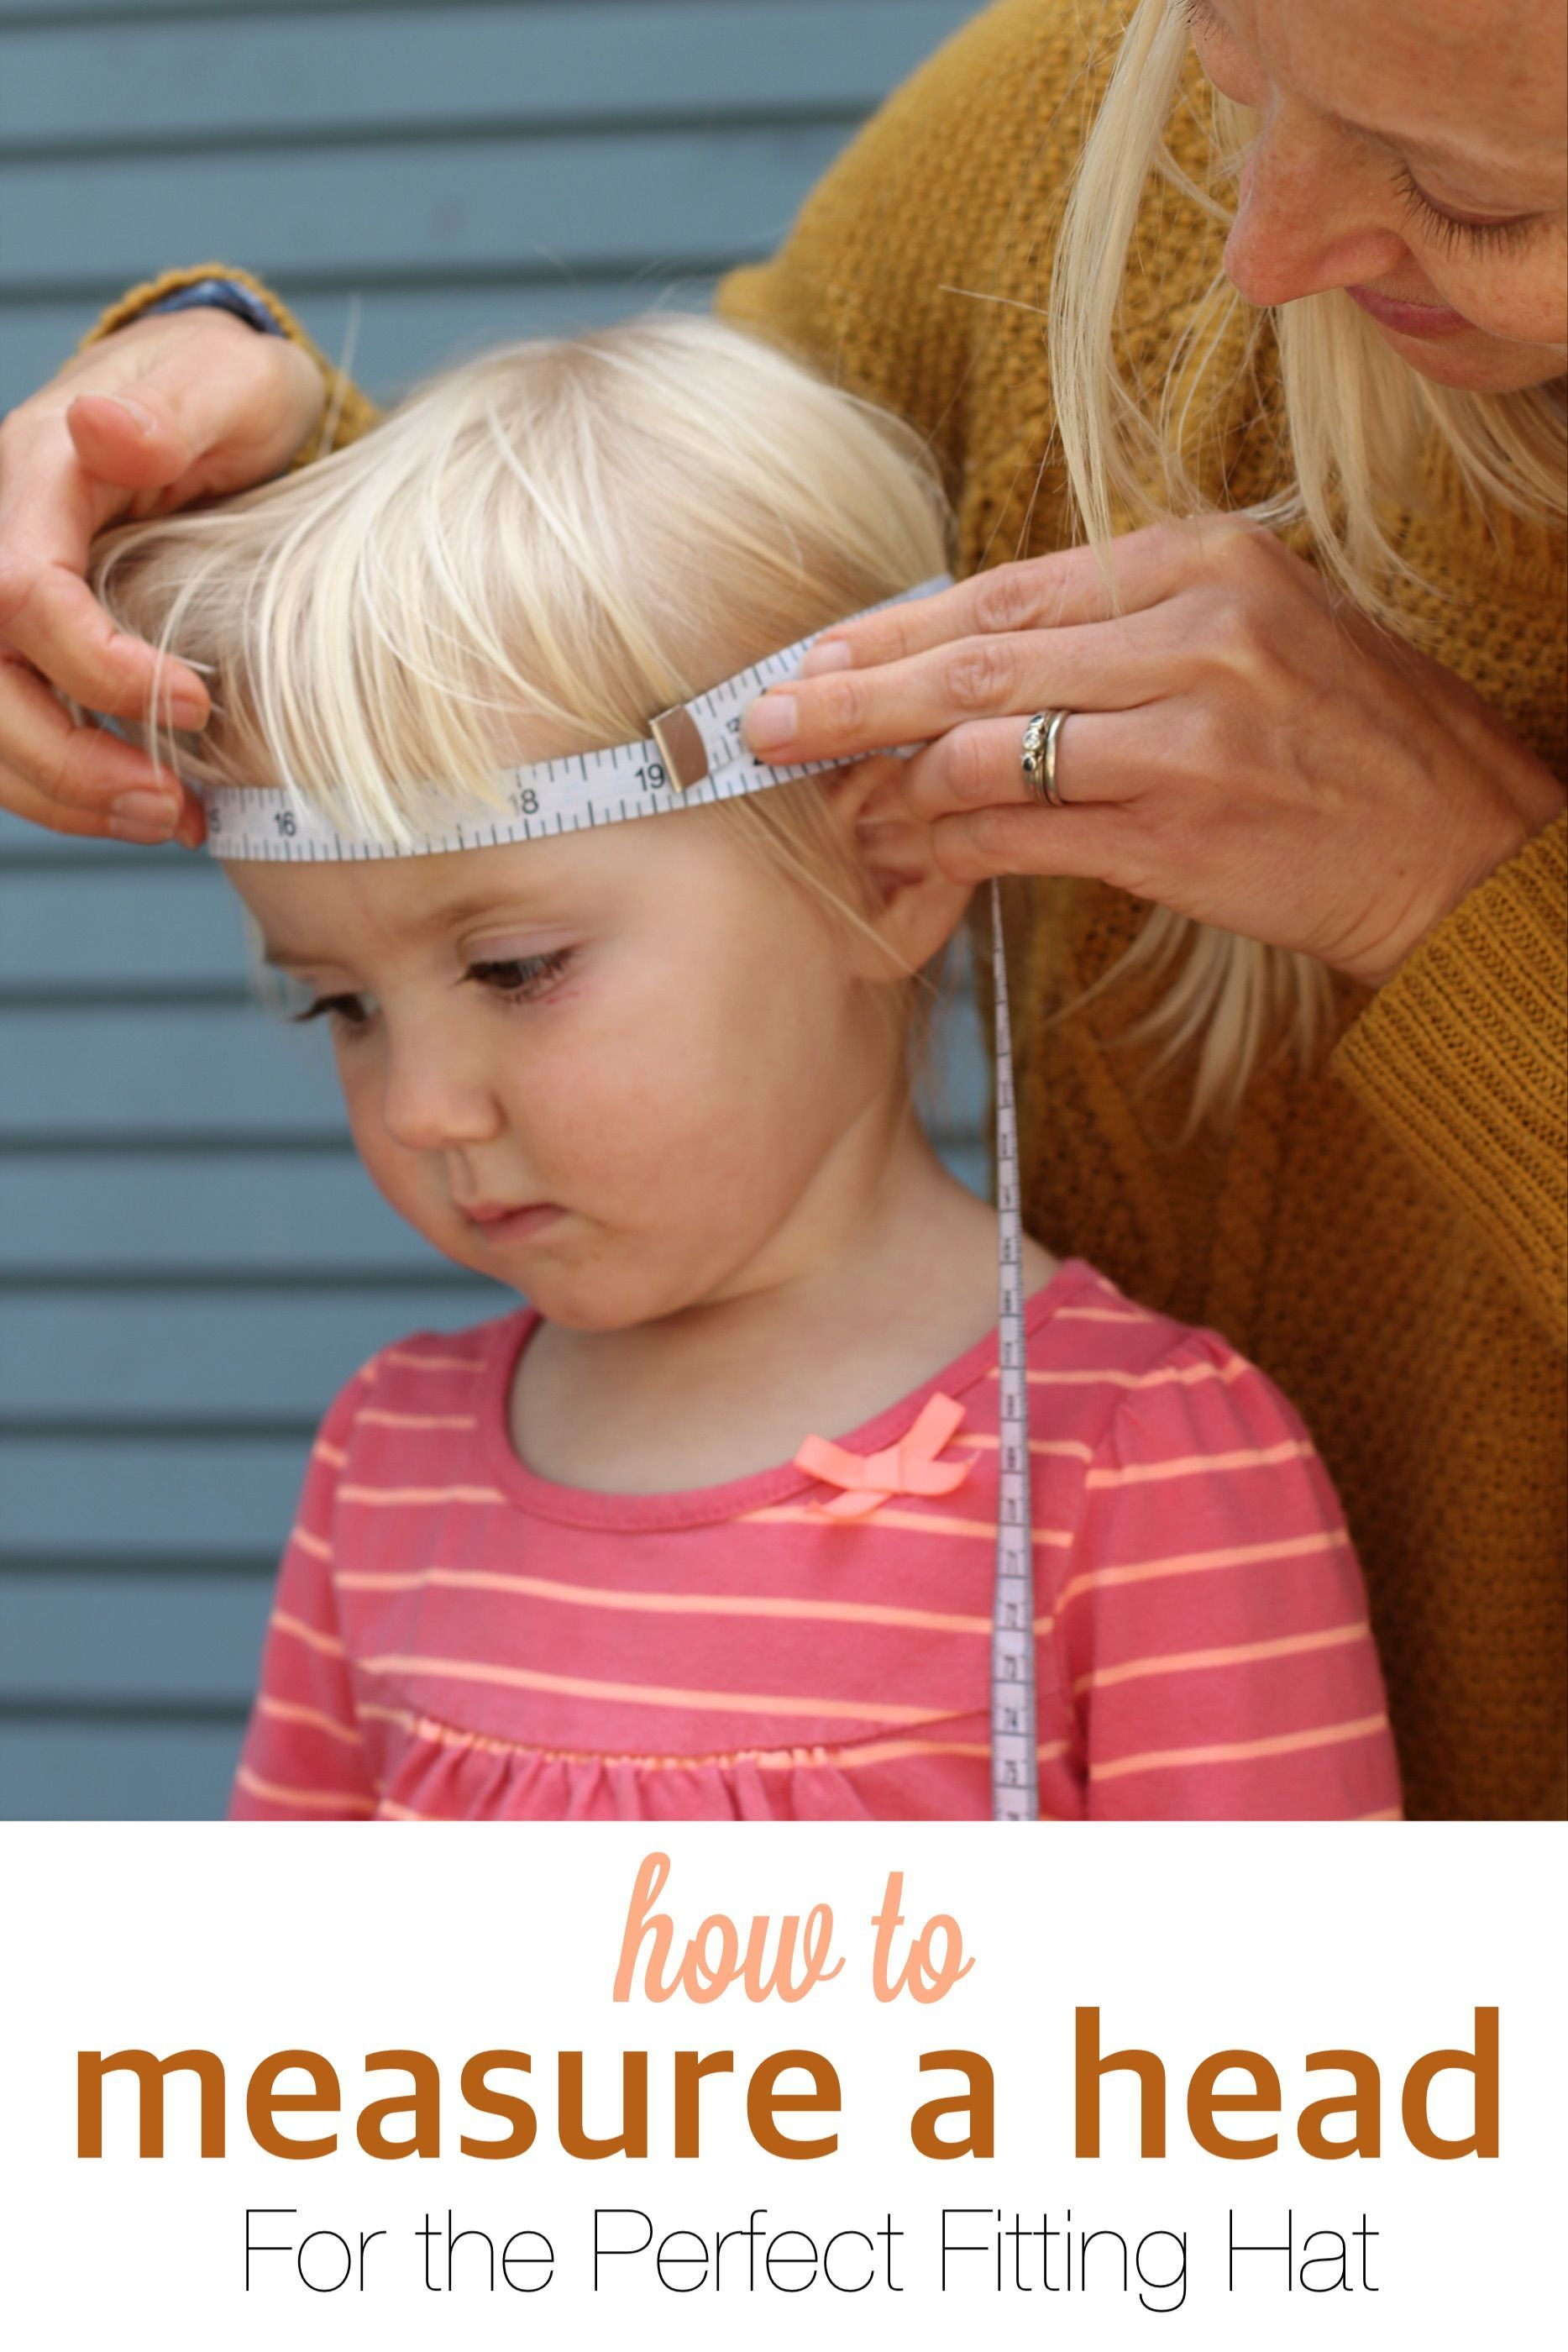 How to measure your kids heads for buying the perfect